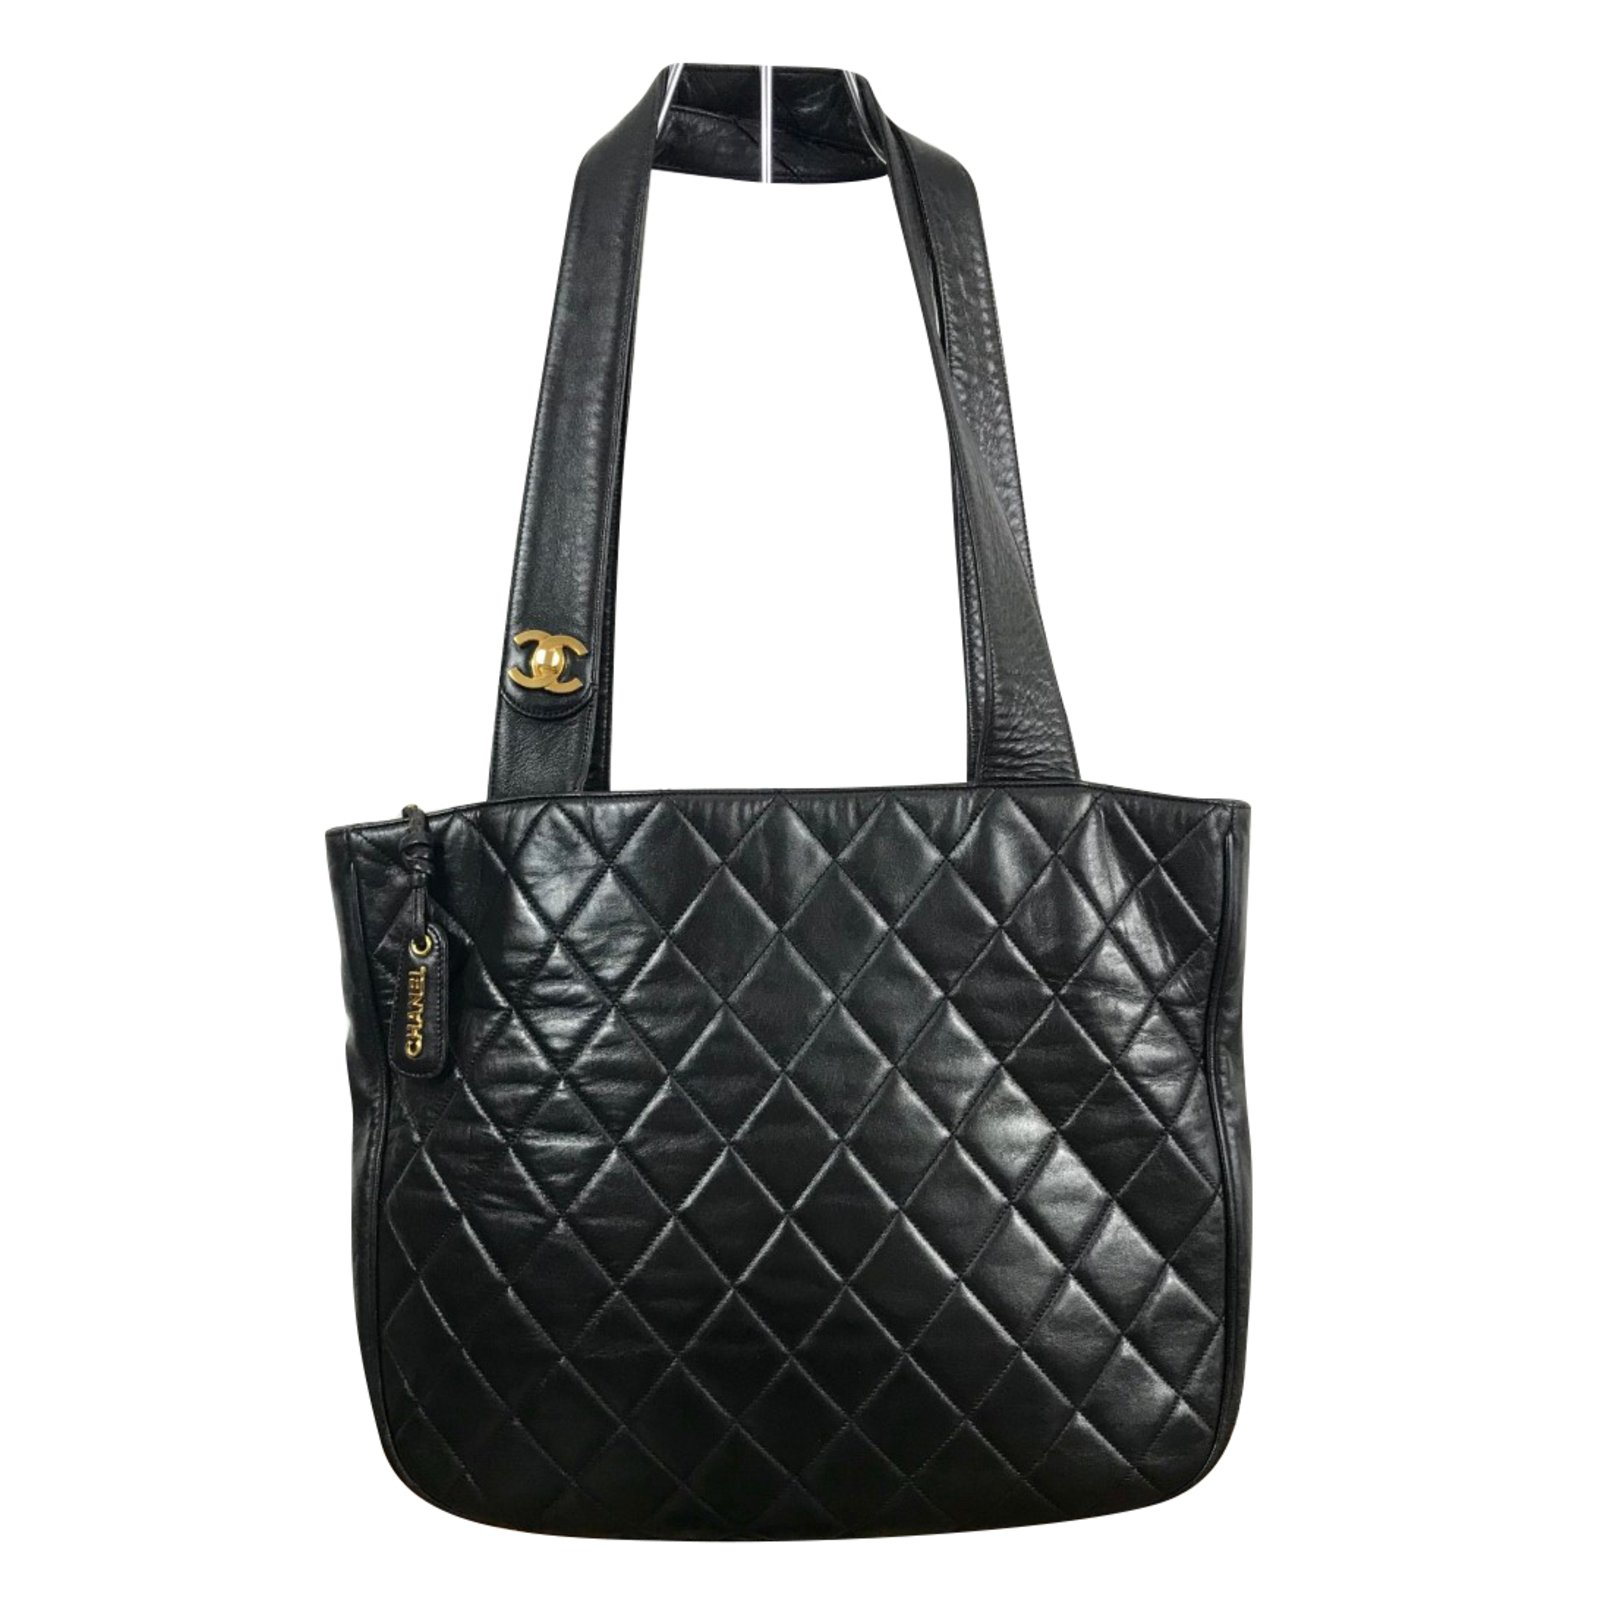 normal handbags rosy in made leather lyst bag bags product quilt quilted italy height black ferragamo salvatore gallery